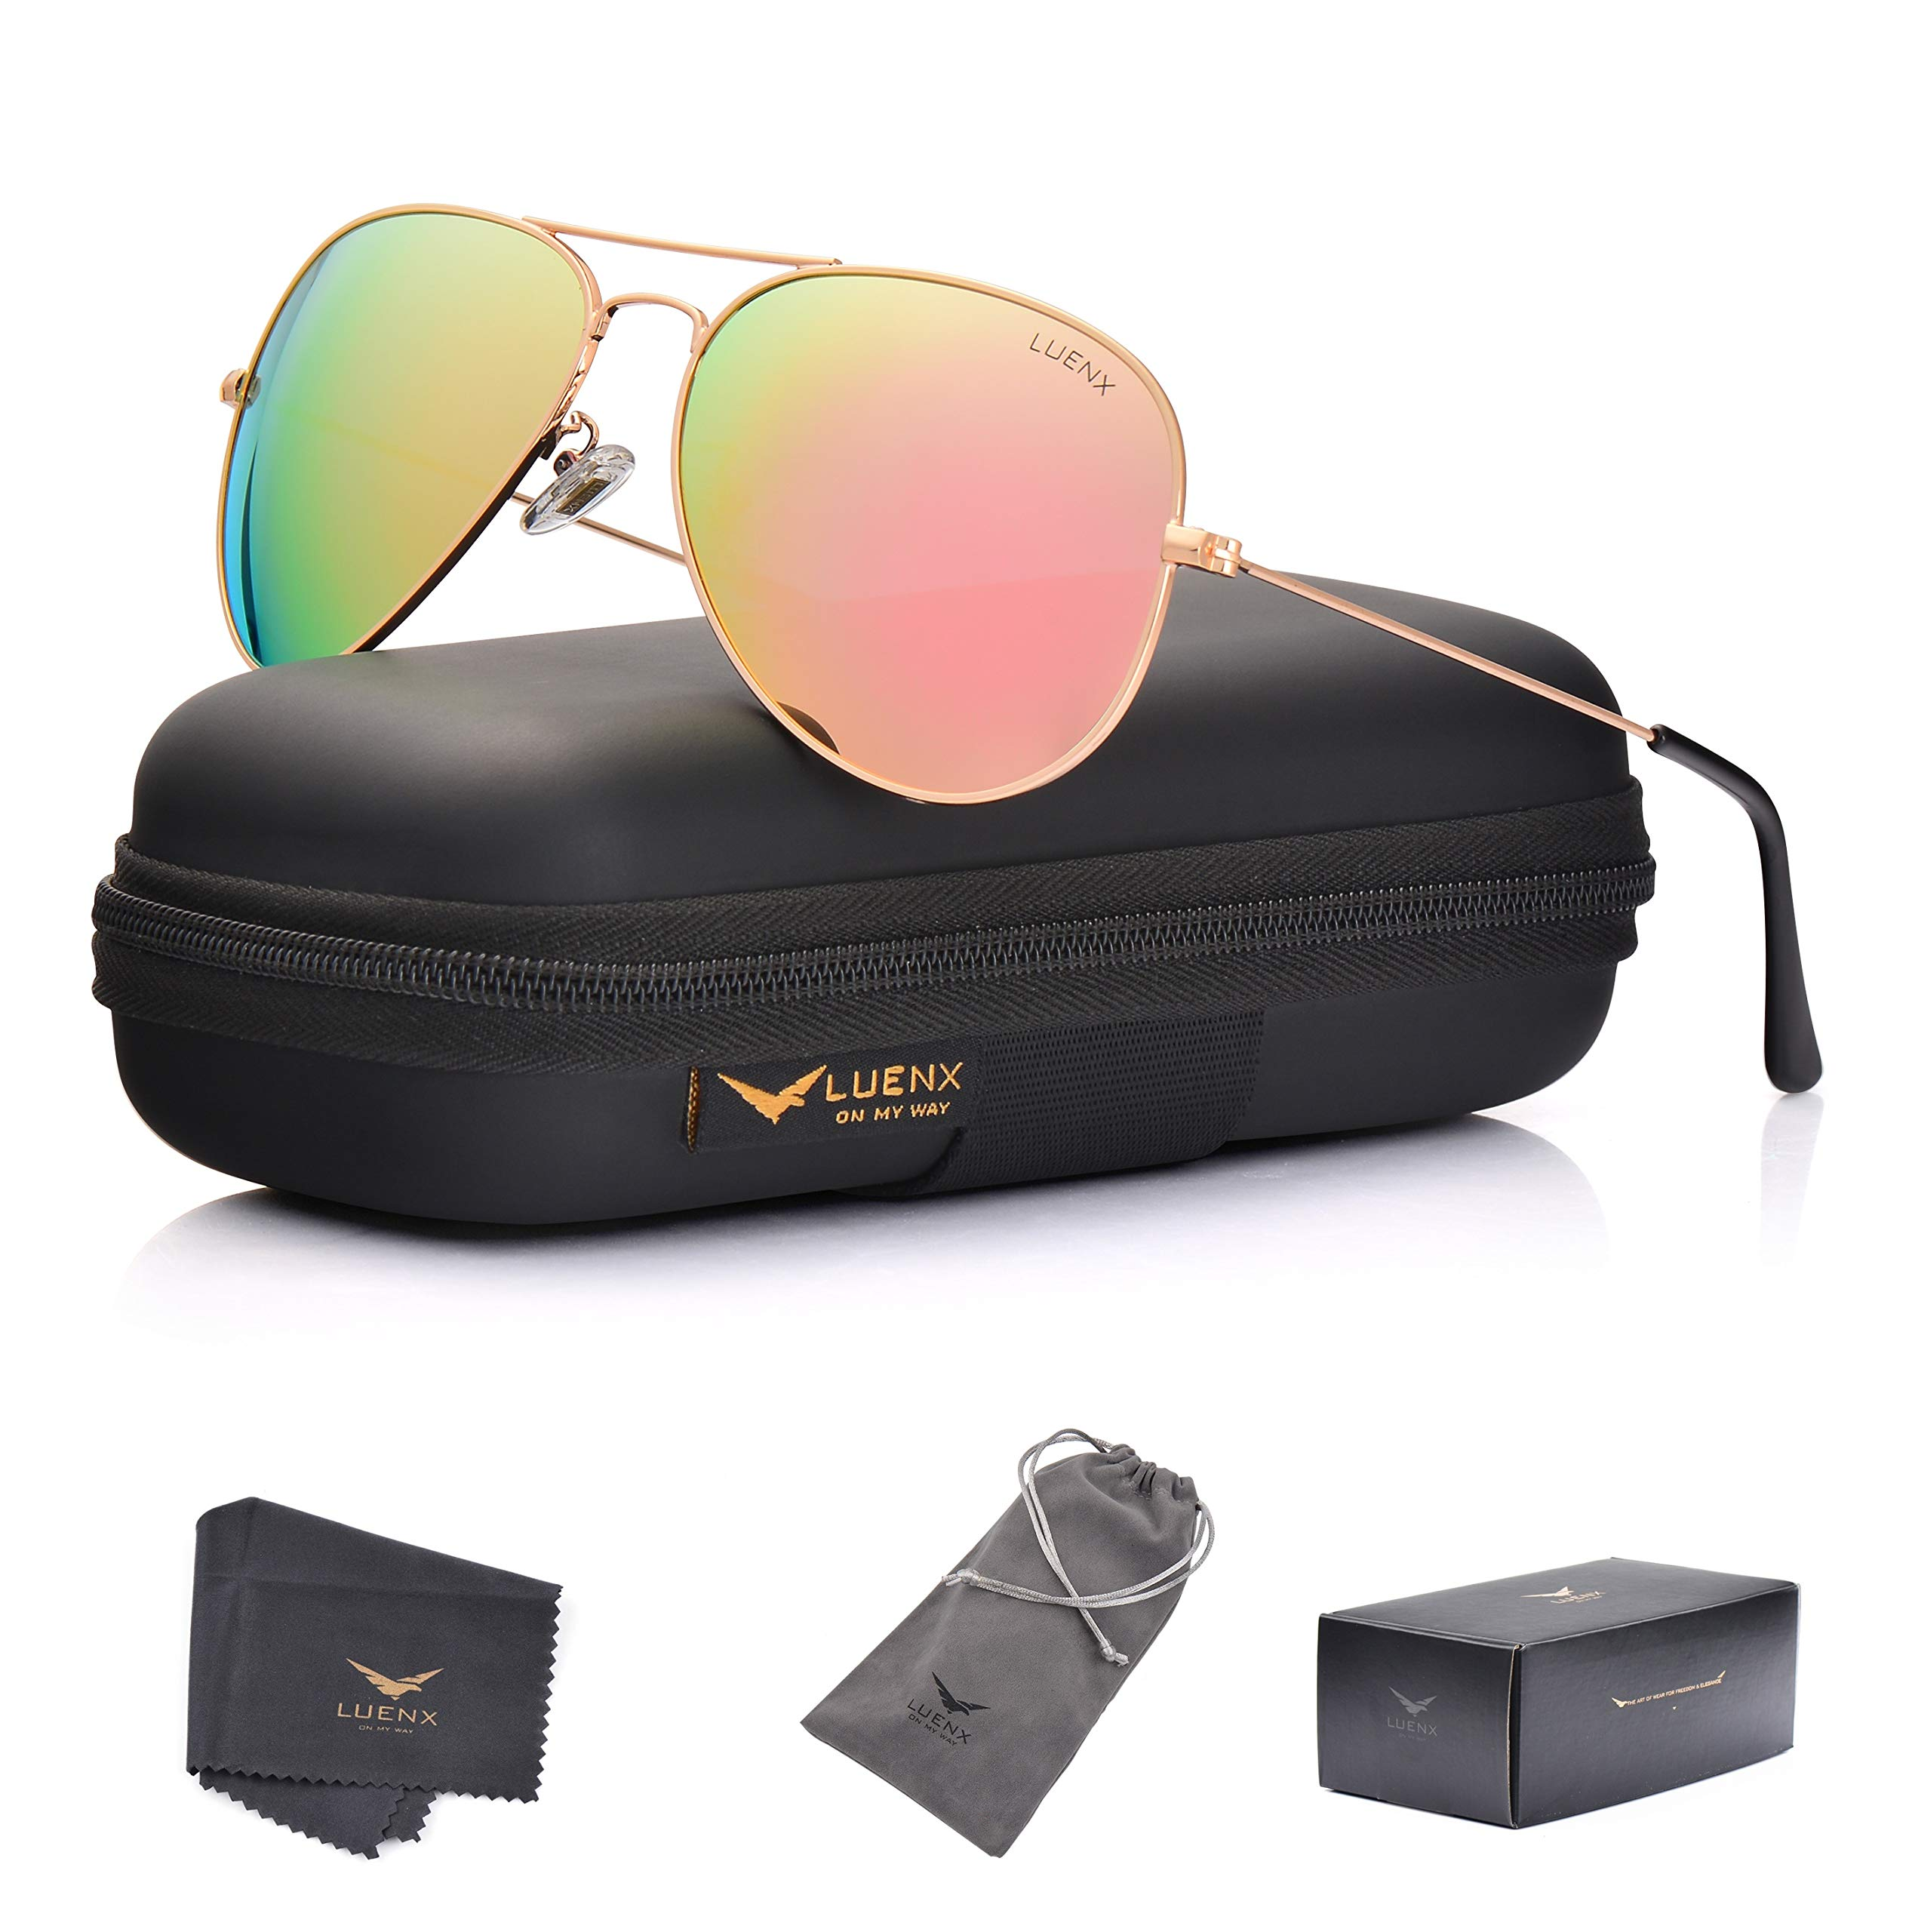 LUENX Aviator Womens Mens Sunglasses Polarized Pink Mirrored lenses Gold Frame UV 400 Protection Classic Style by LUENX